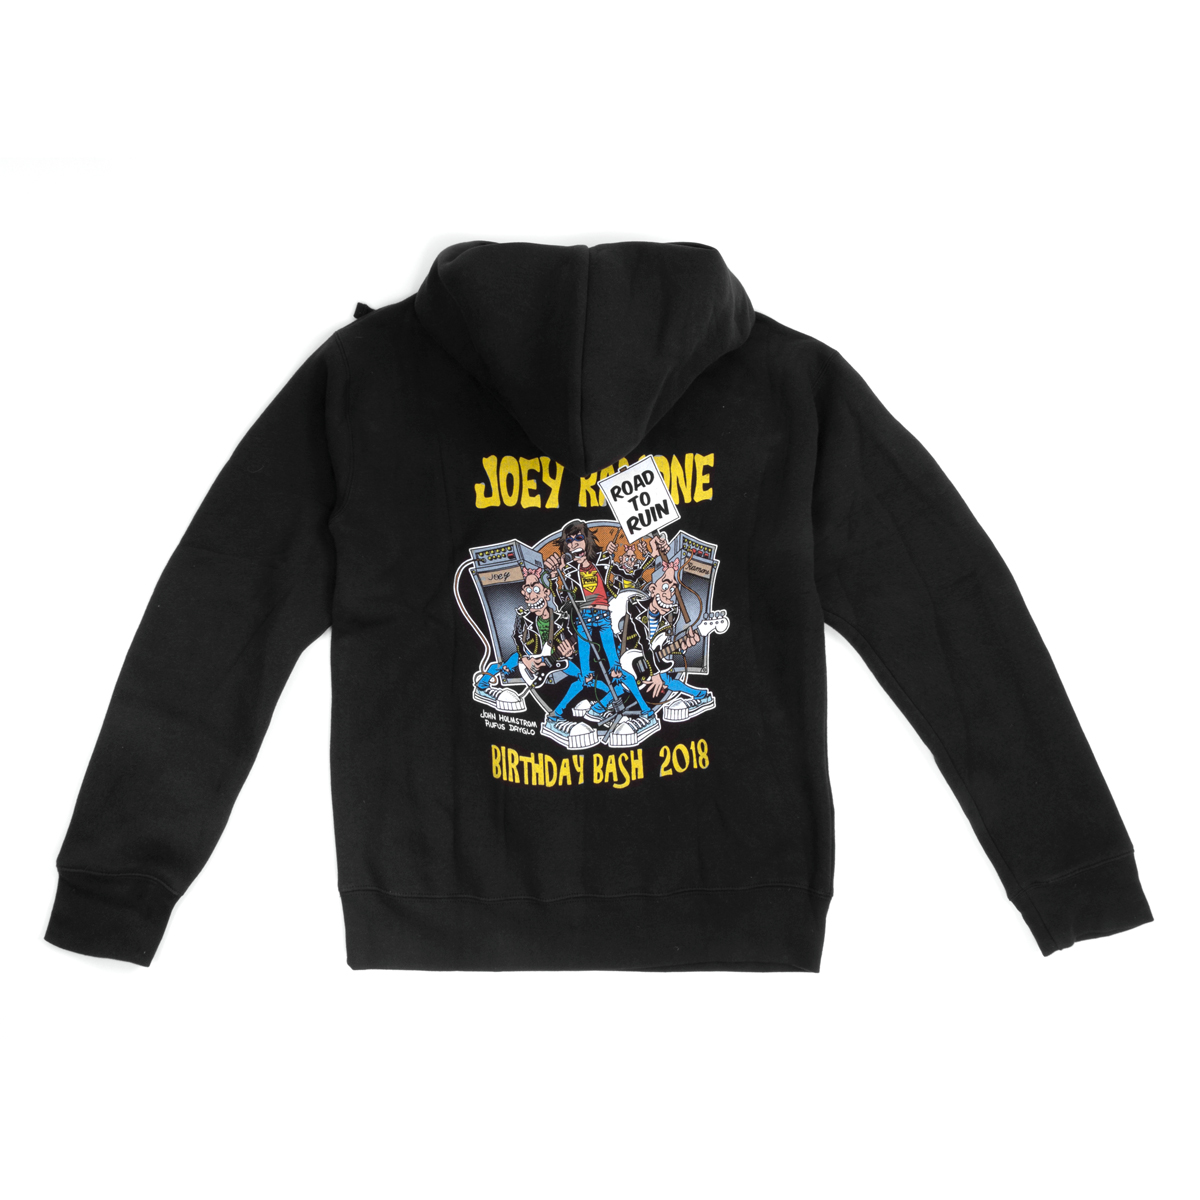 Joey Ramone 2018 Birthday Bash Sweatshirt